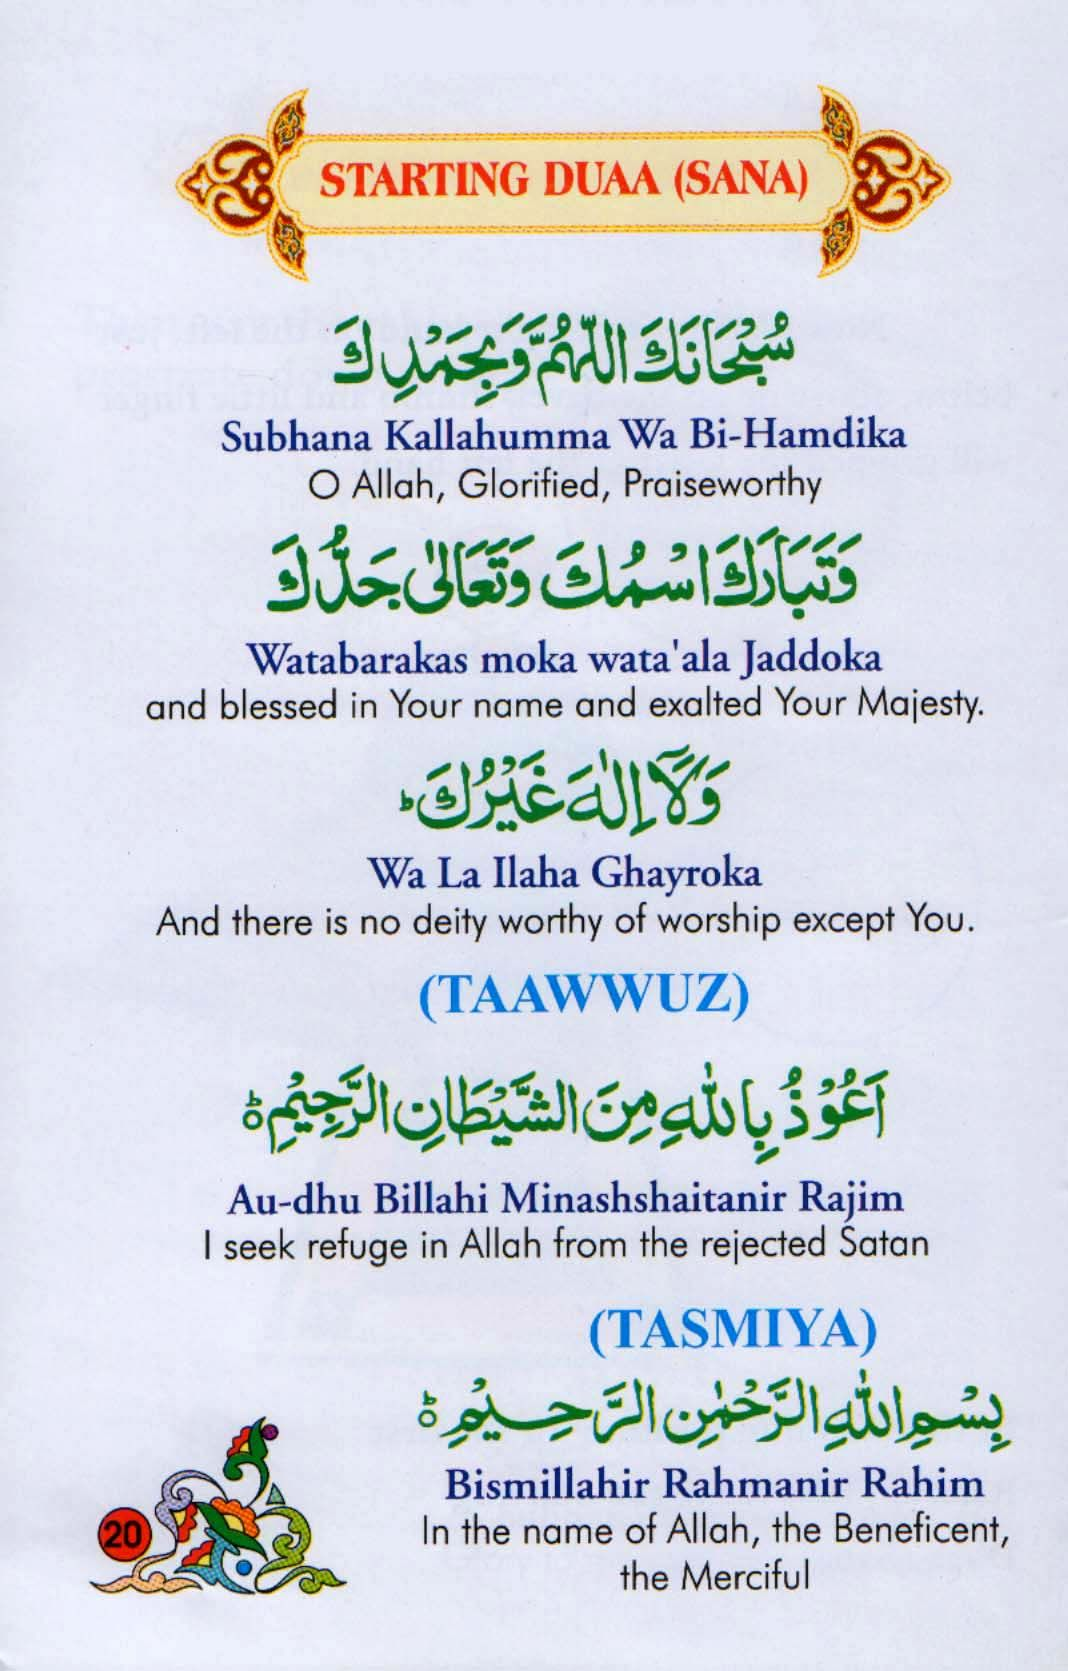 Learn Sana Namaz After the Namaz Sana you have to read the Surah Al